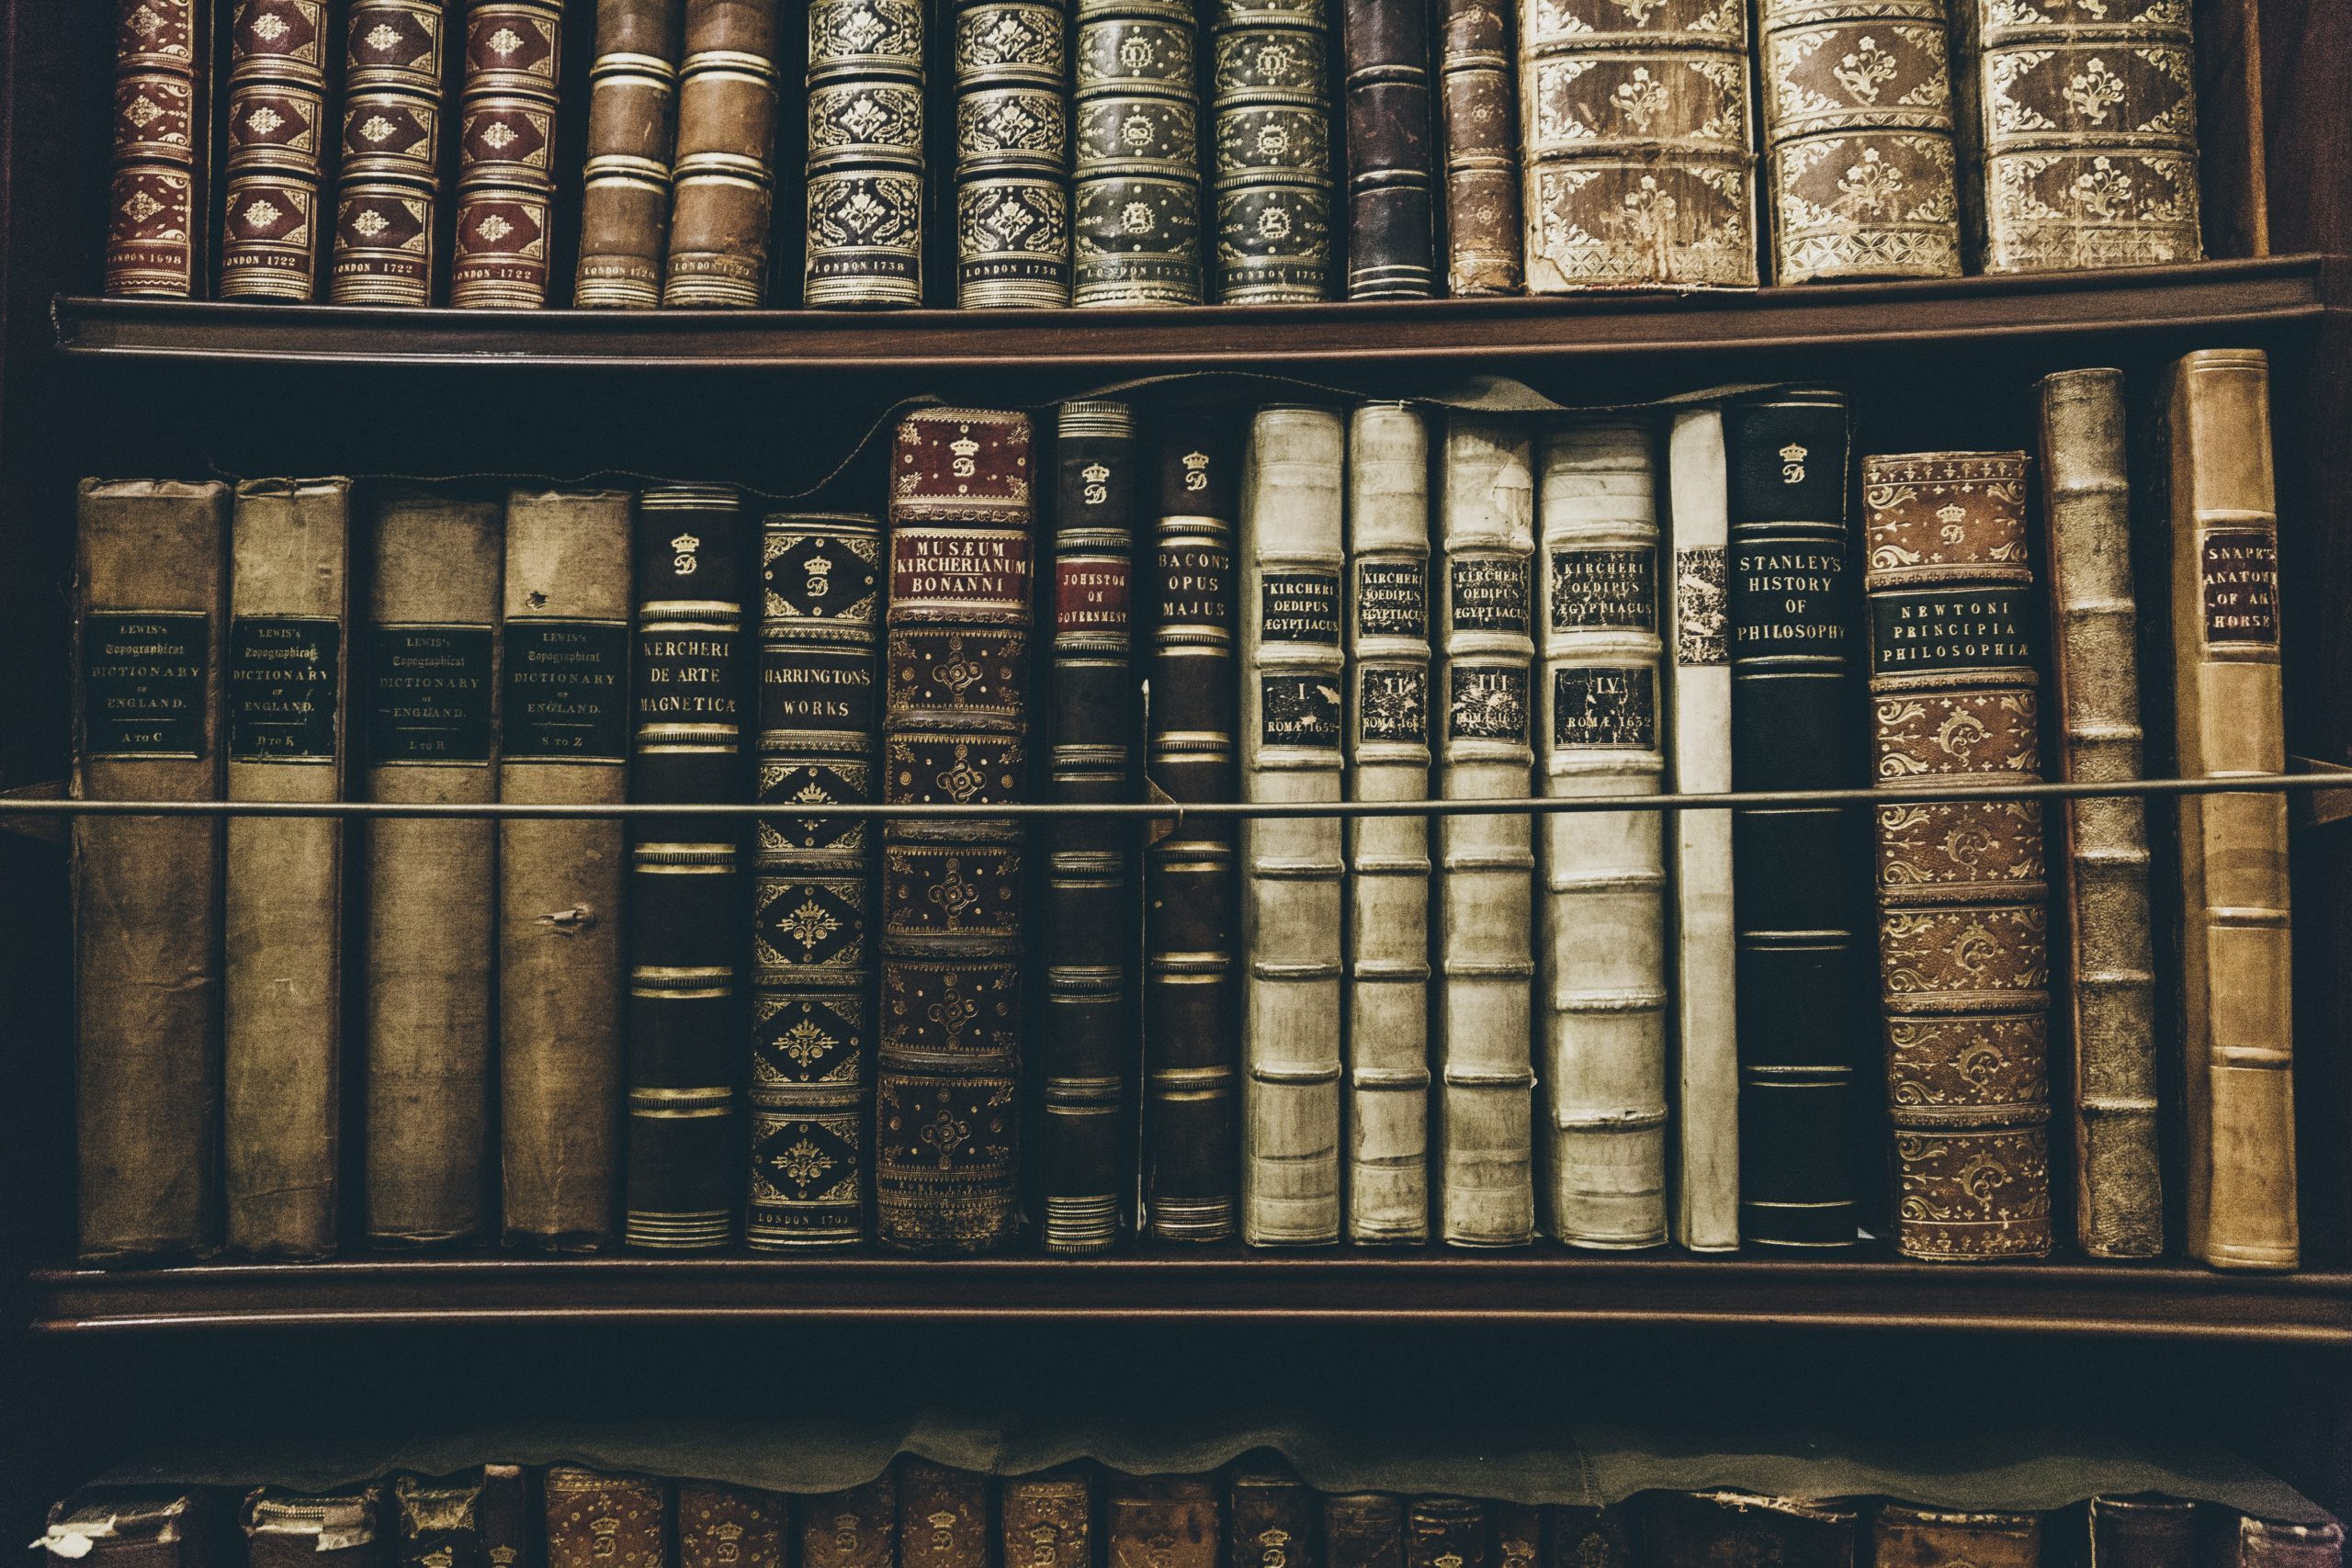 Stock images of old books on a shelf